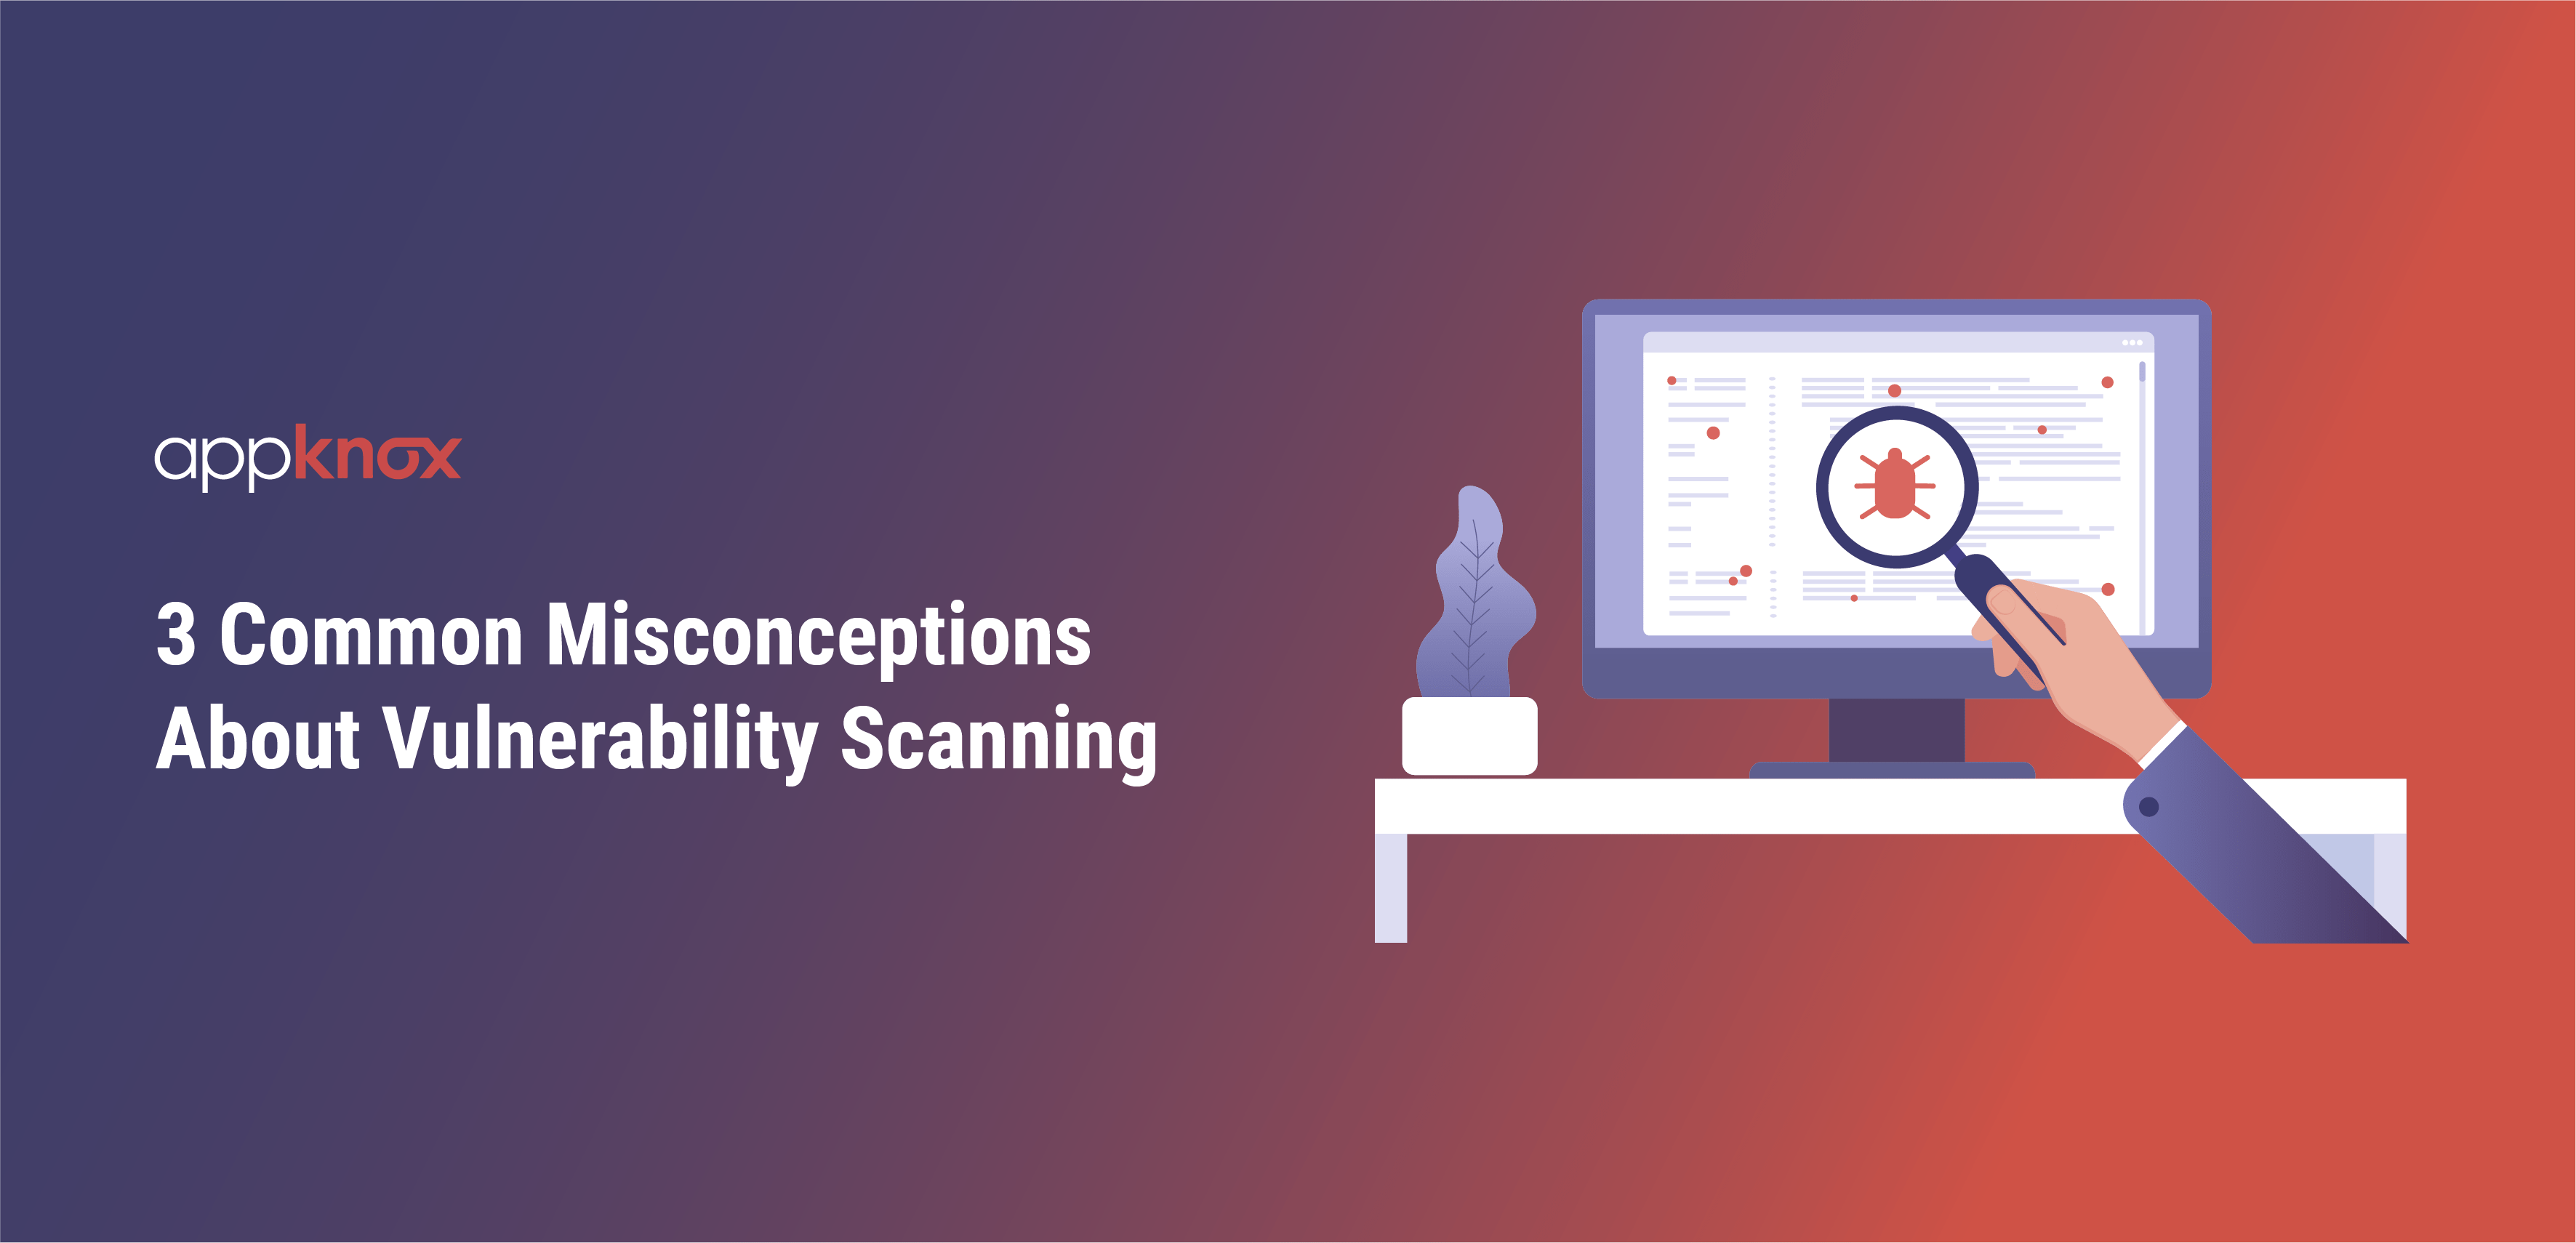 3 Common Misconceptions About Vulnerability Scanning